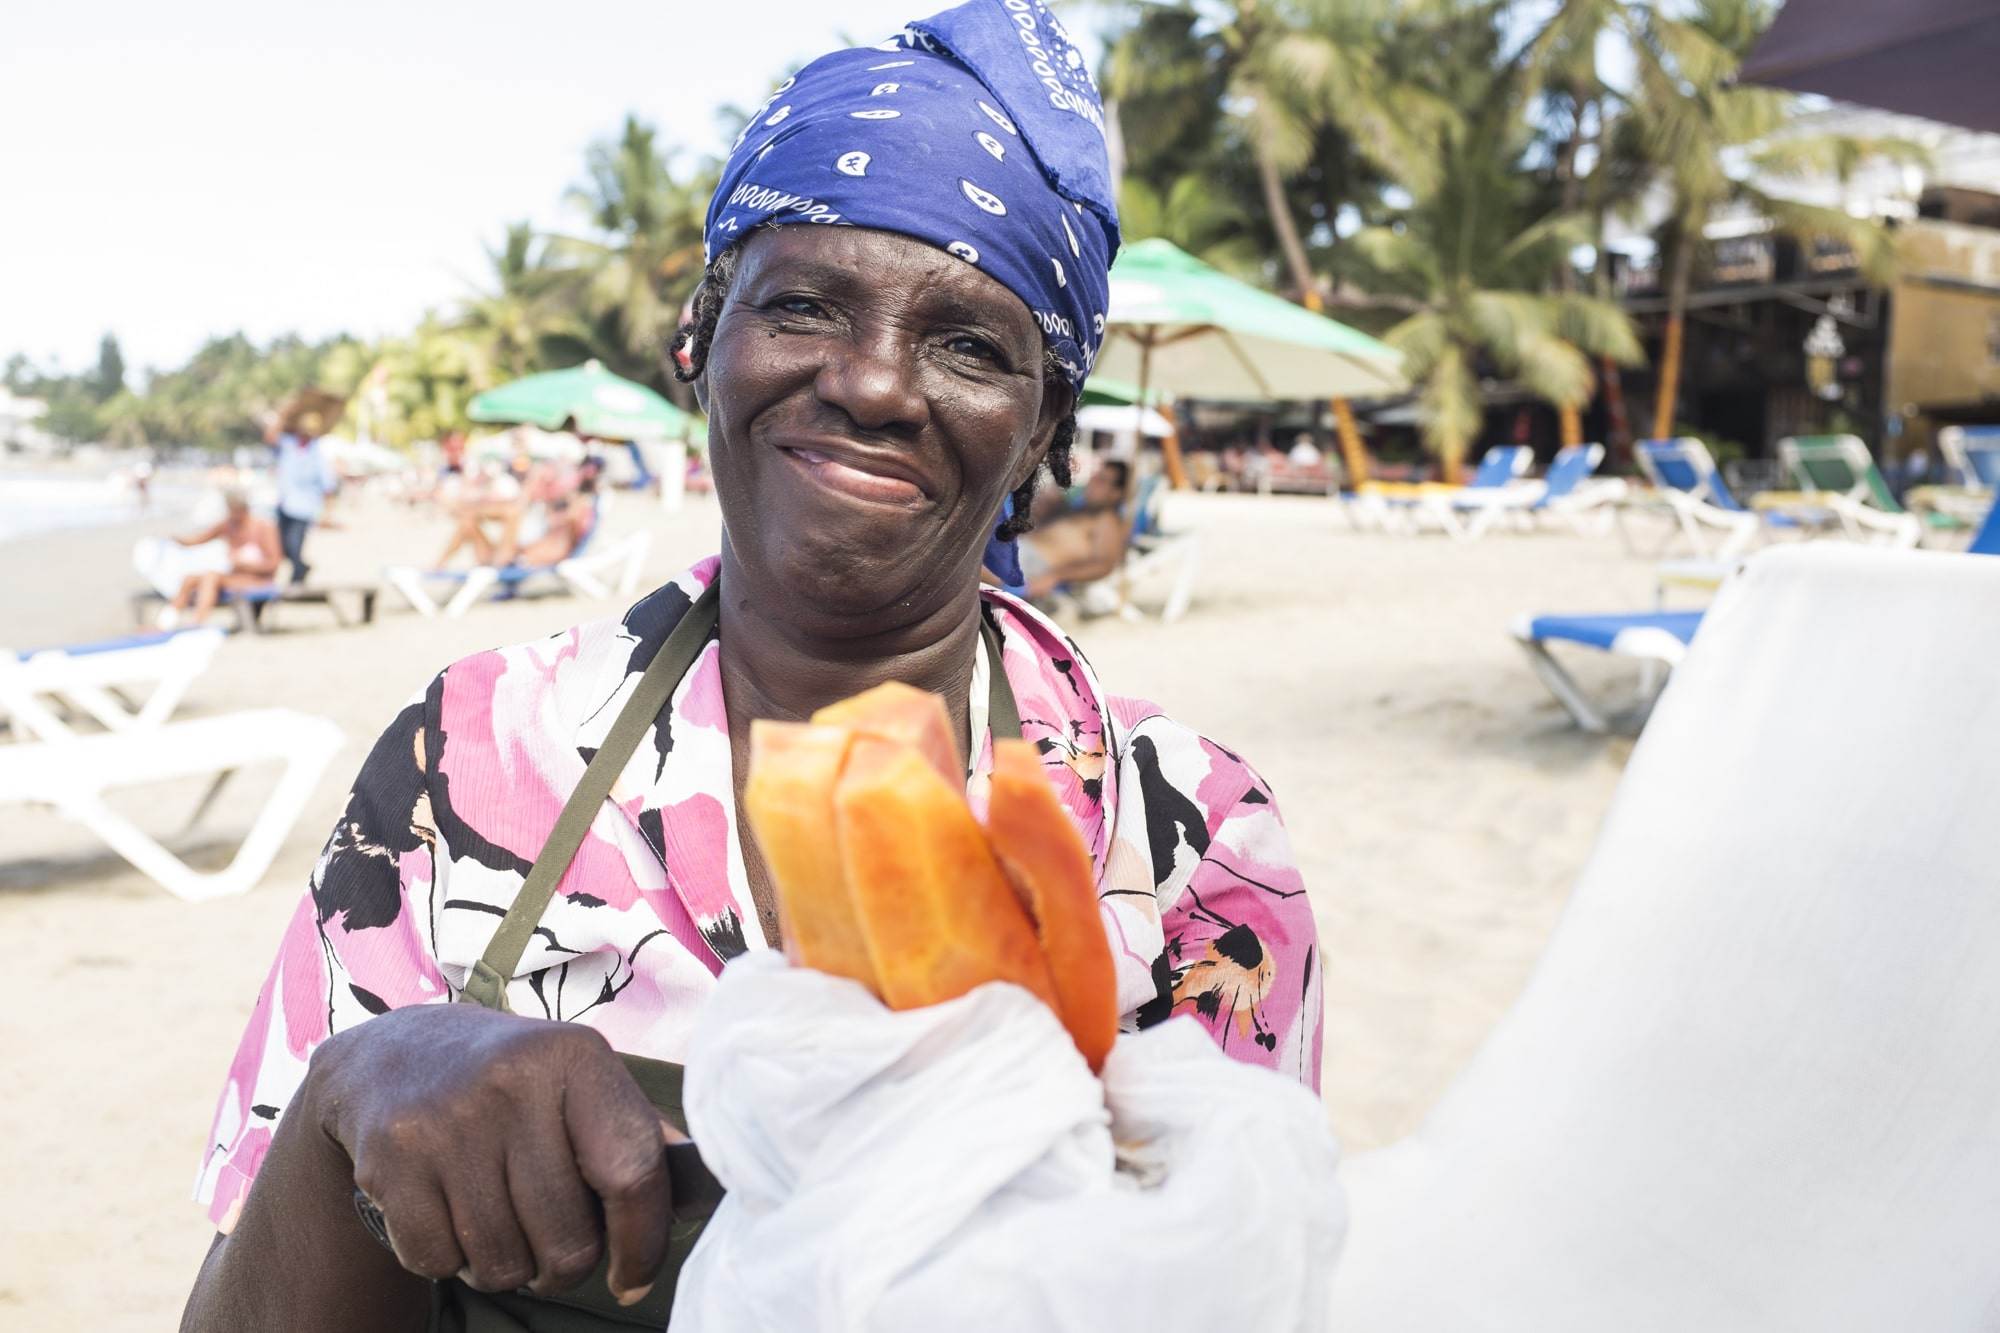 Cabarete Icons: Ana The Fruit Lady